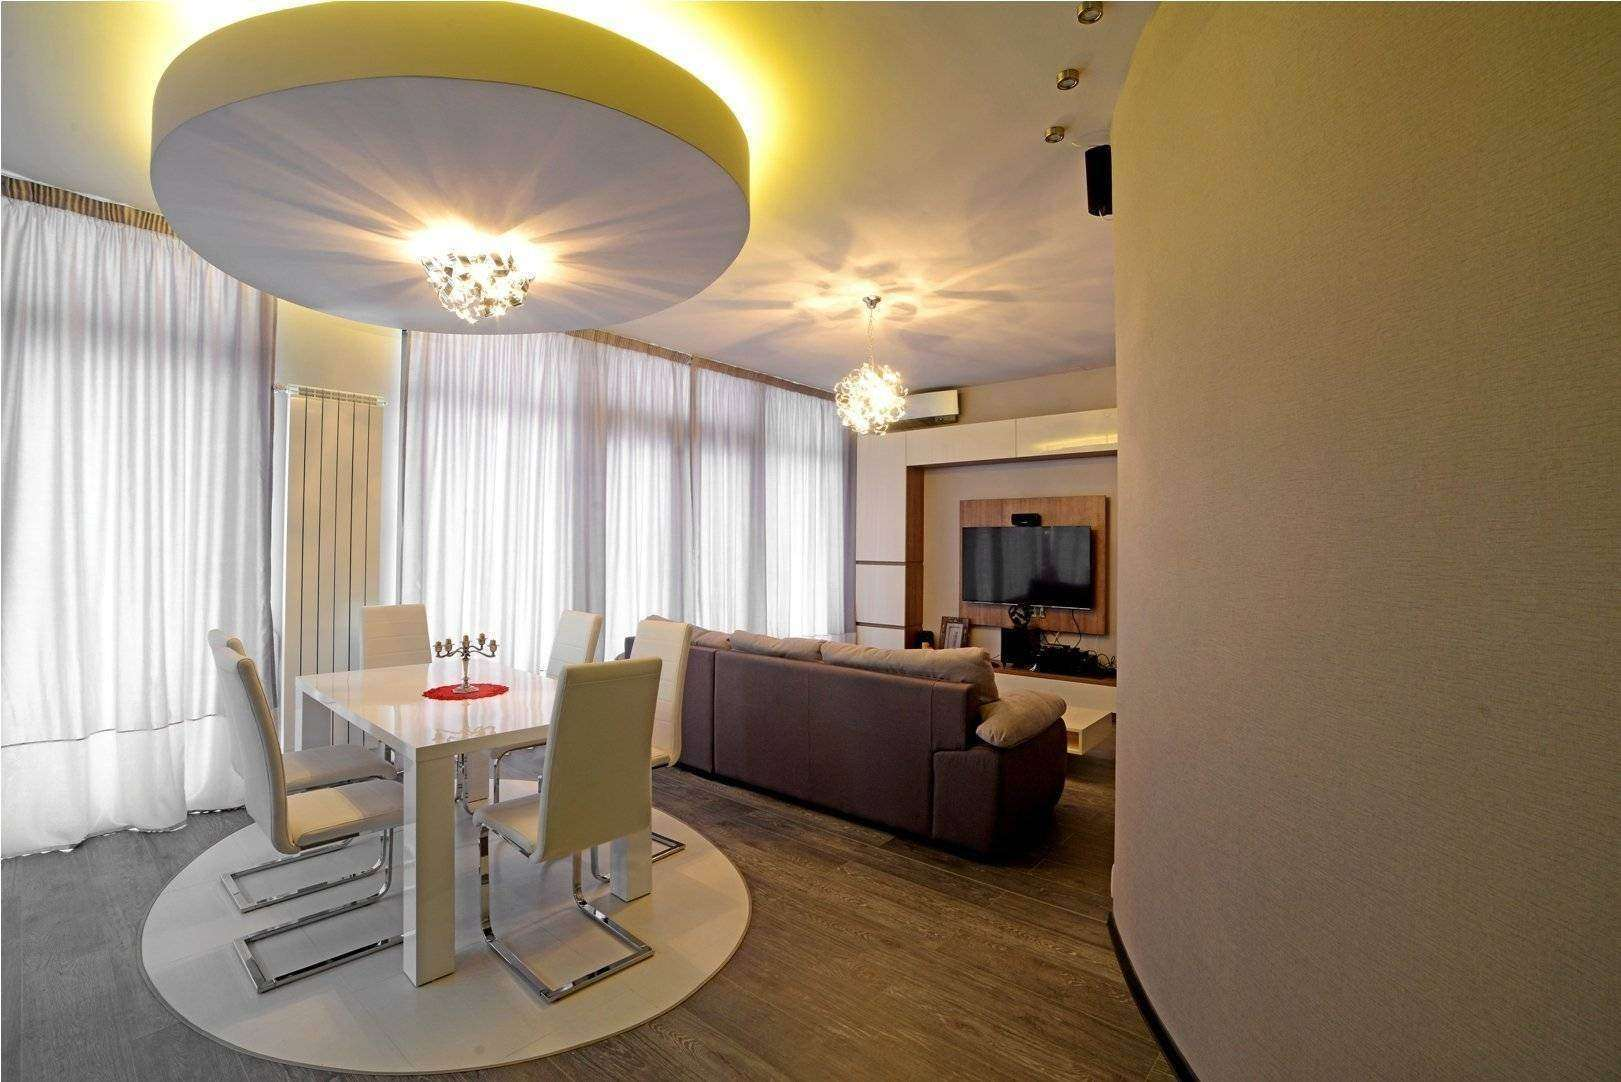 <a href=&quot;&quot;>Amenajare cu lumini living Anaya<img src='http://www.unican.ro/wp-content/themes/vita/img/dreapta.png' class='pull-right hidden-xs' style='margin-right:-10px;margin-top:-10px; max-height:41px'></a>